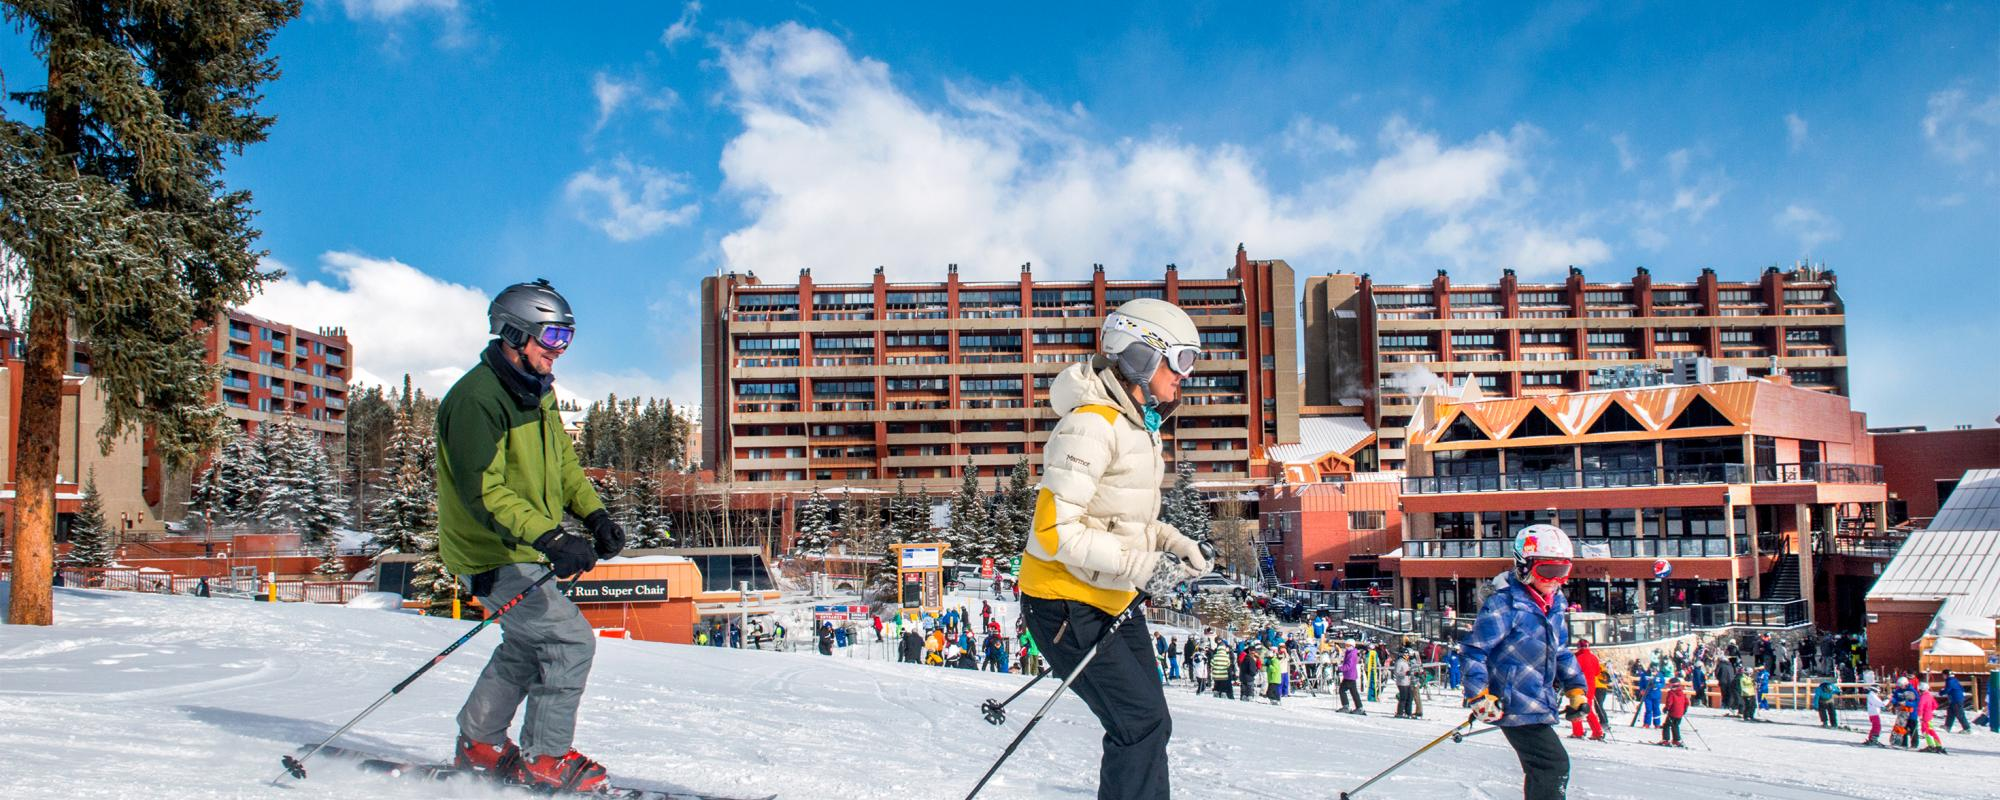 Skiers in front of Beaver Run Resort